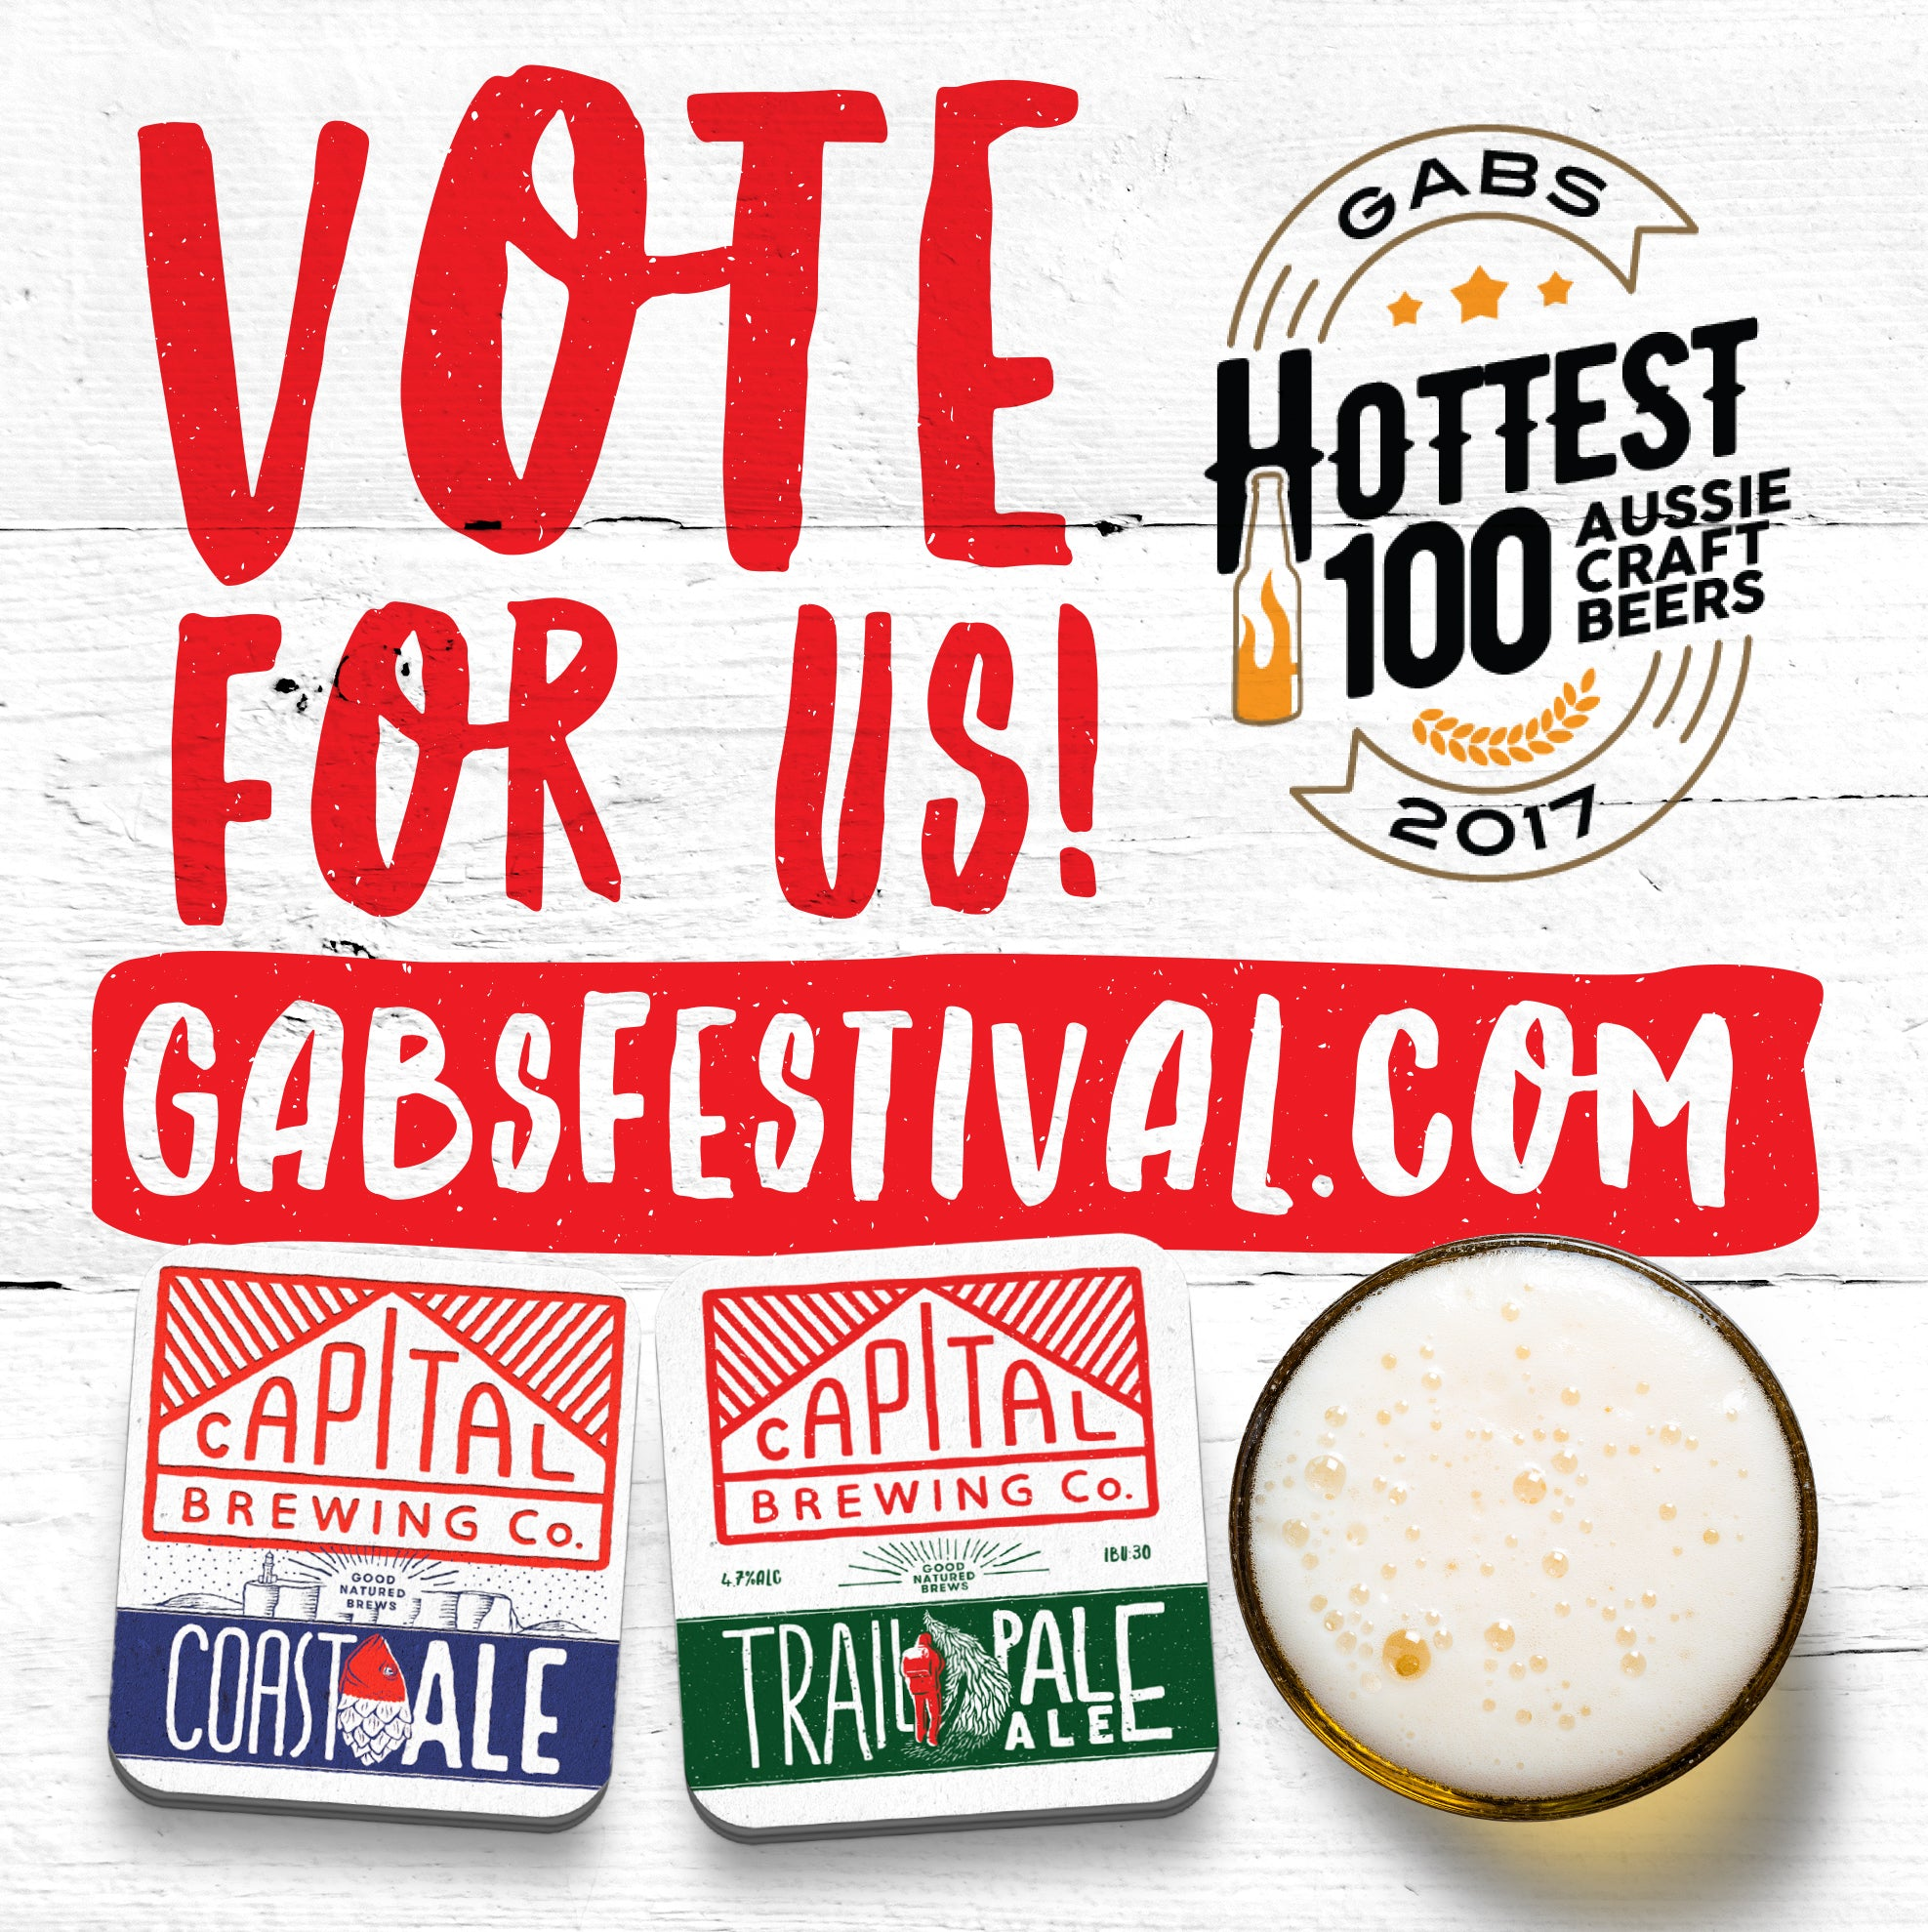 Vote now for Capital brews In The GABS Hottest 100 Crafts Beers